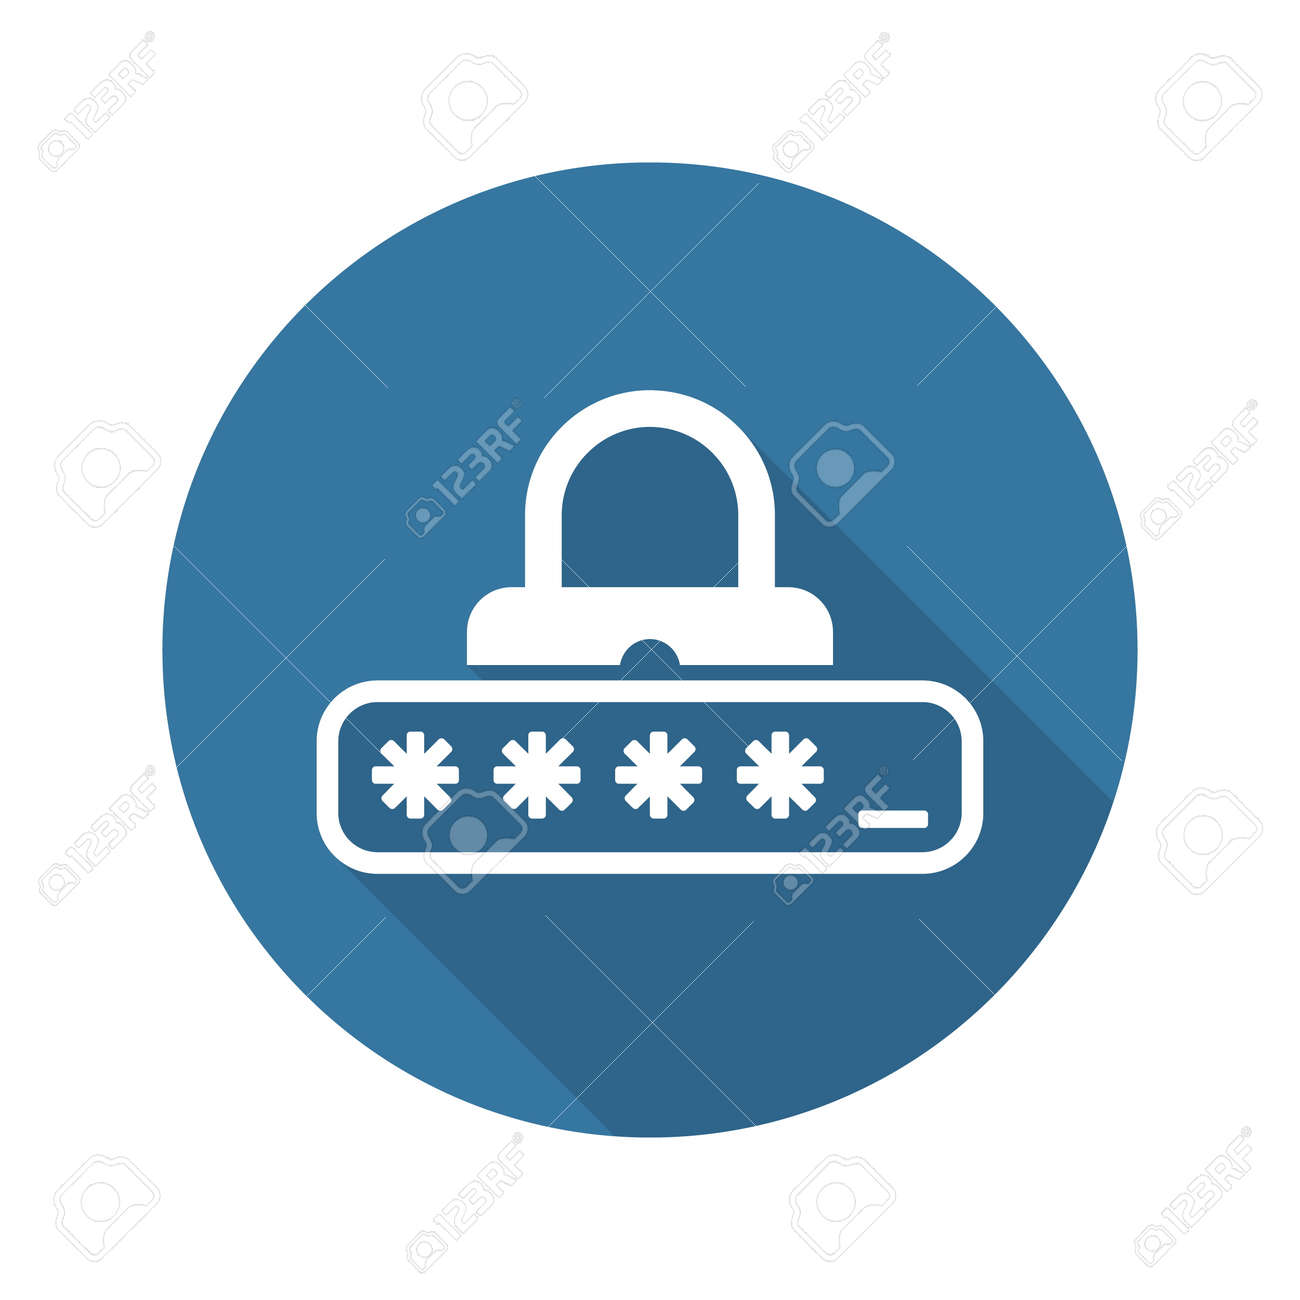 Password Protection Icon. Flat Design. Business Concept Isolated Illustration. - 53803441